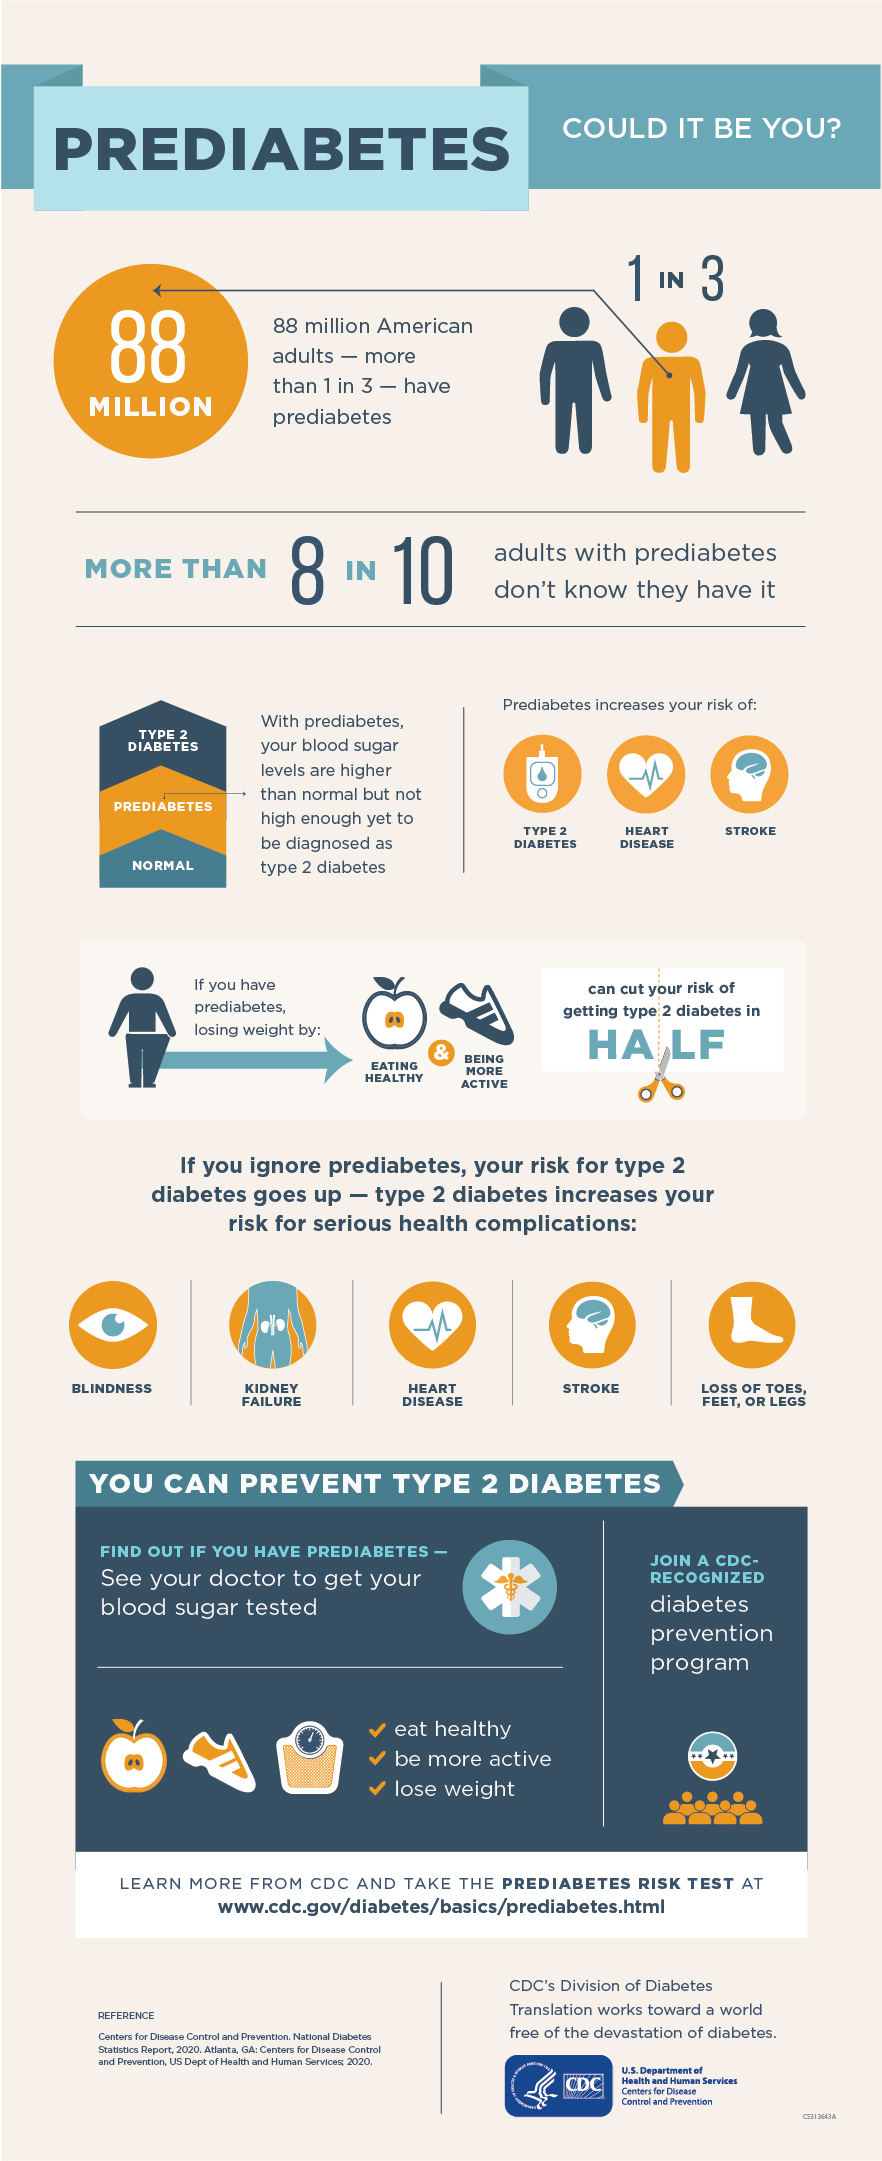 Prediabetes, could it be you?